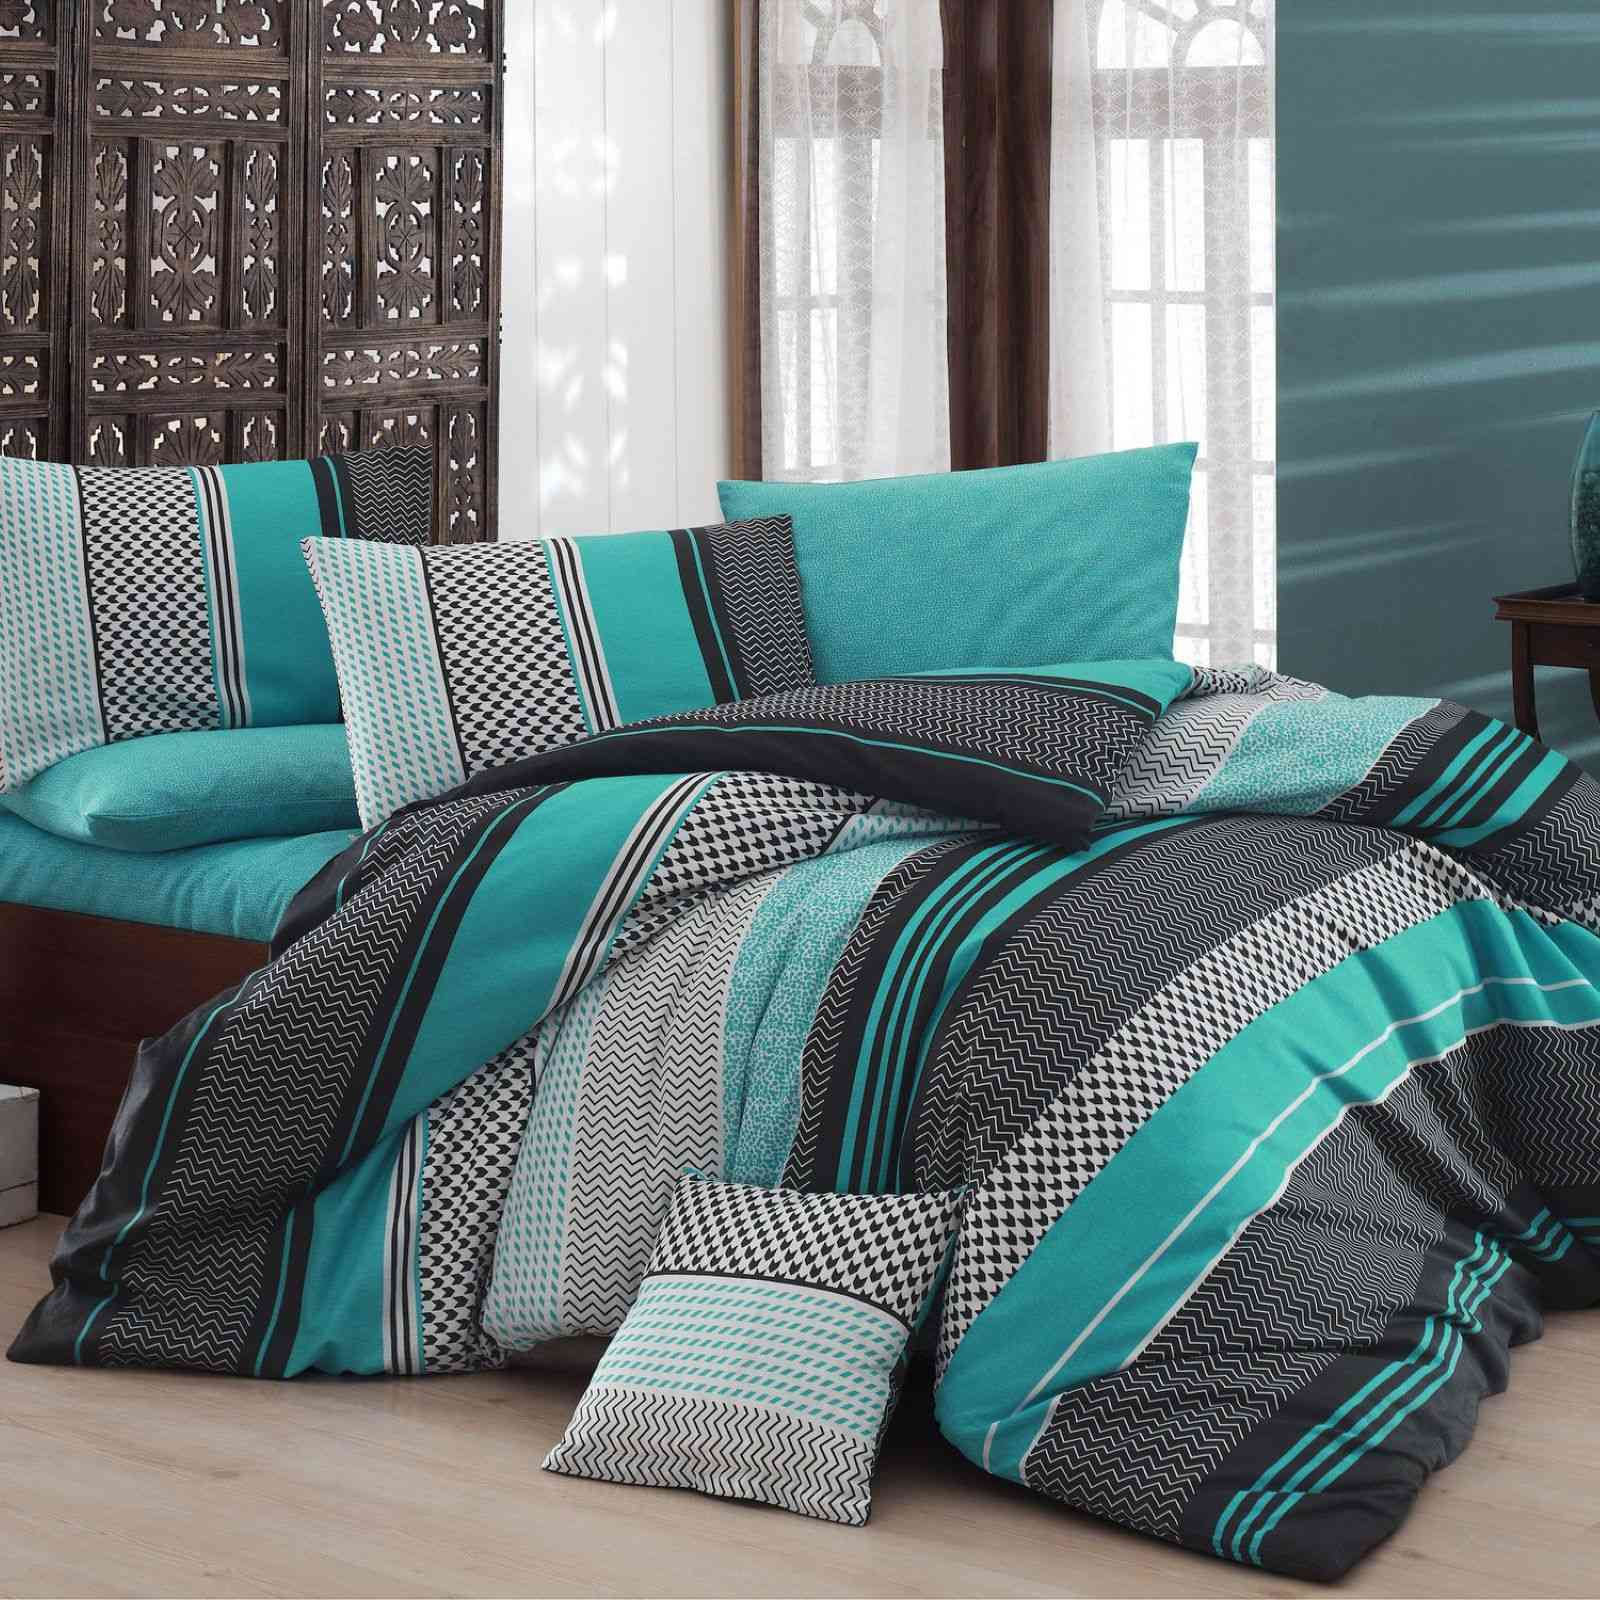 nazenin home parure de lit turquoise brandalley. Black Bedroom Furniture Sets. Home Design Ideas